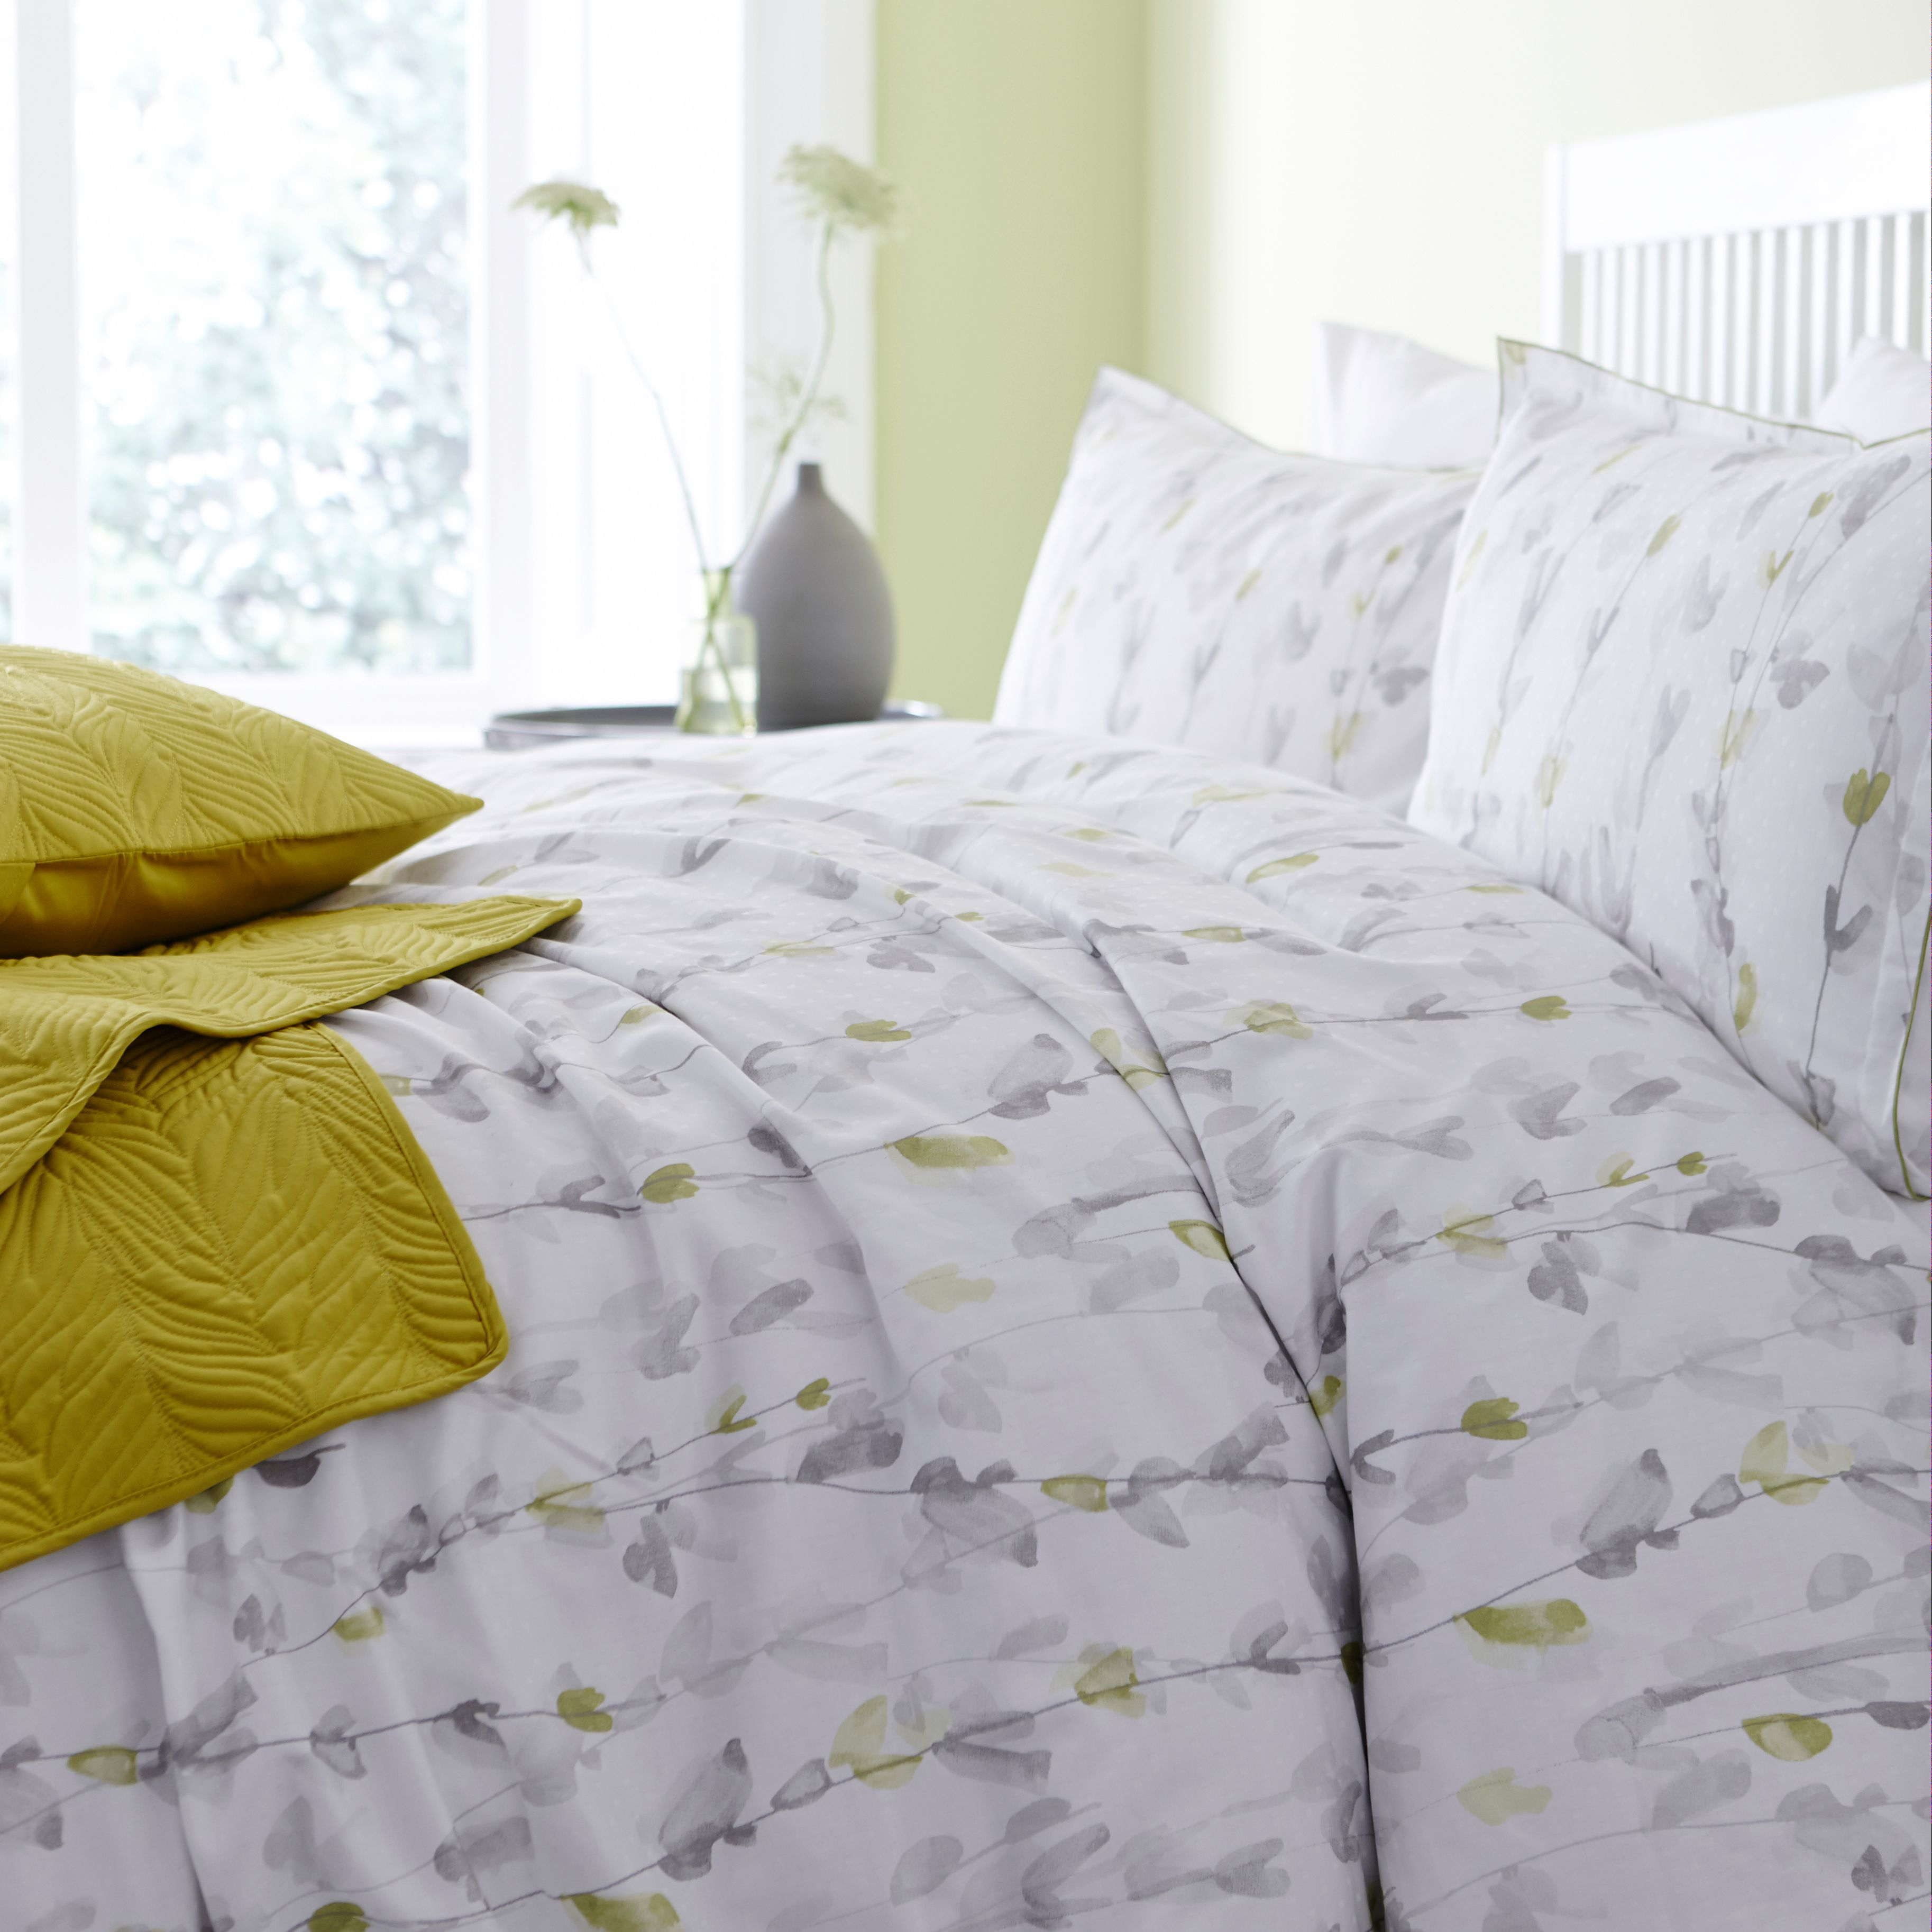 Limeflower bed linen